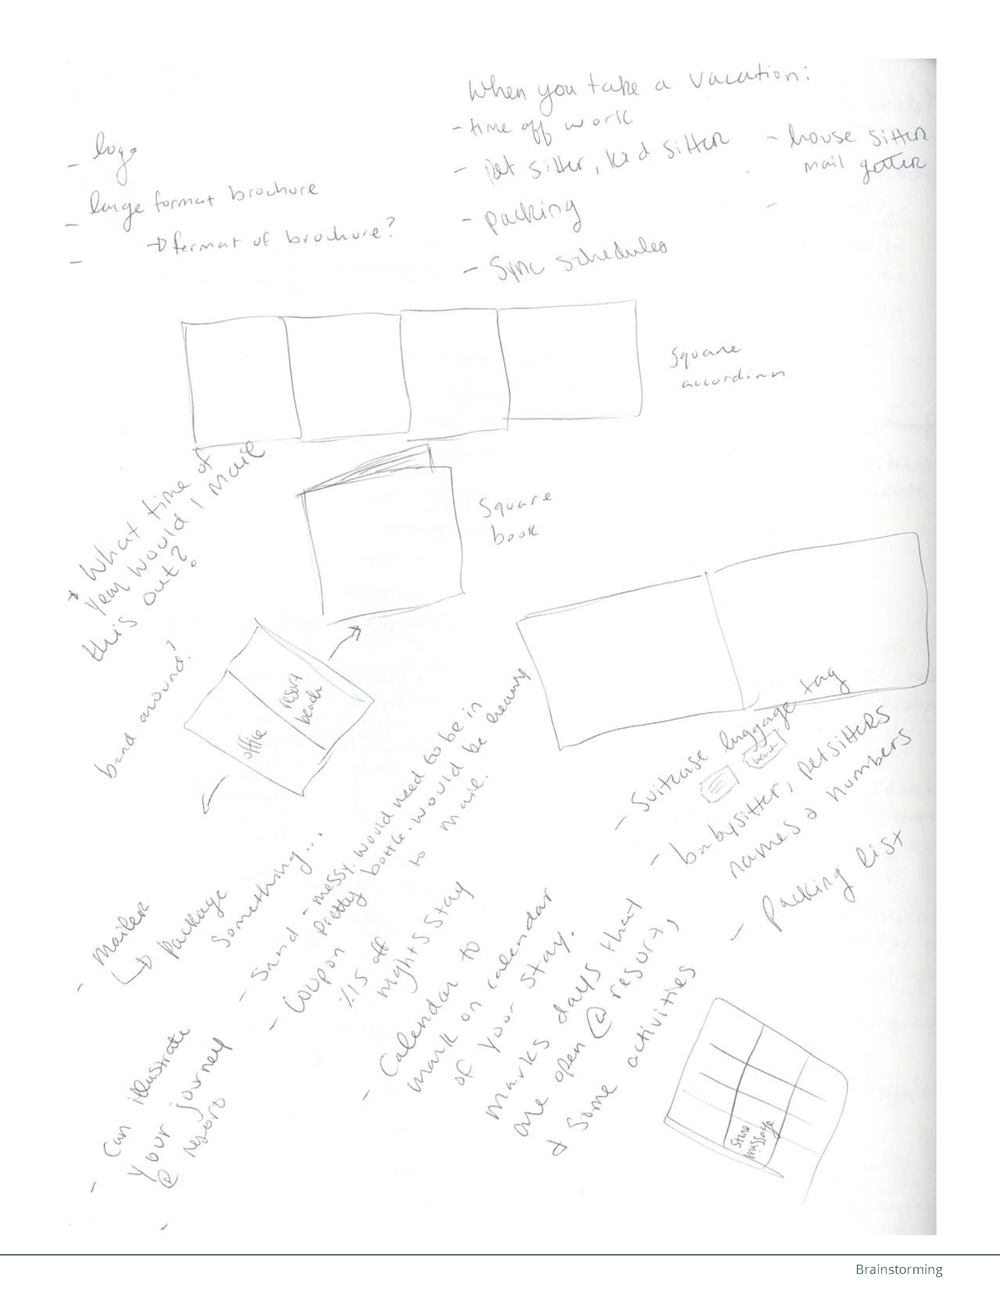 GRDS400_Casem_Project3ProcessBook_F14_Audreybaechle_Page_33.png